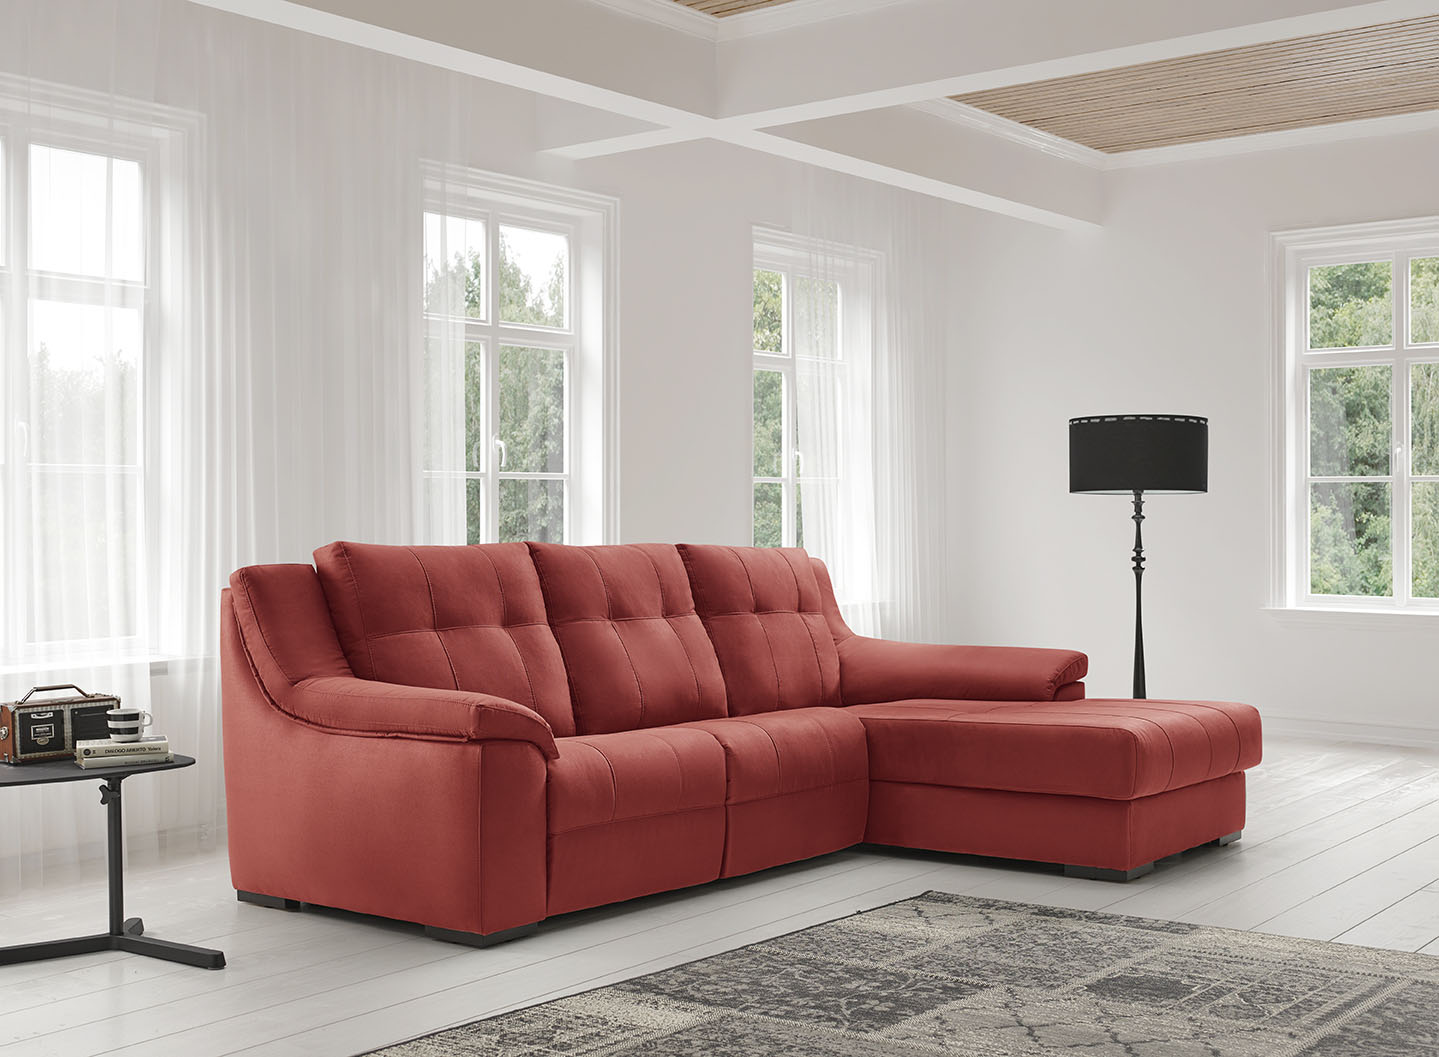 sofa chaiselongue relax moderno Mercado del Mueble Vivarea Pinto